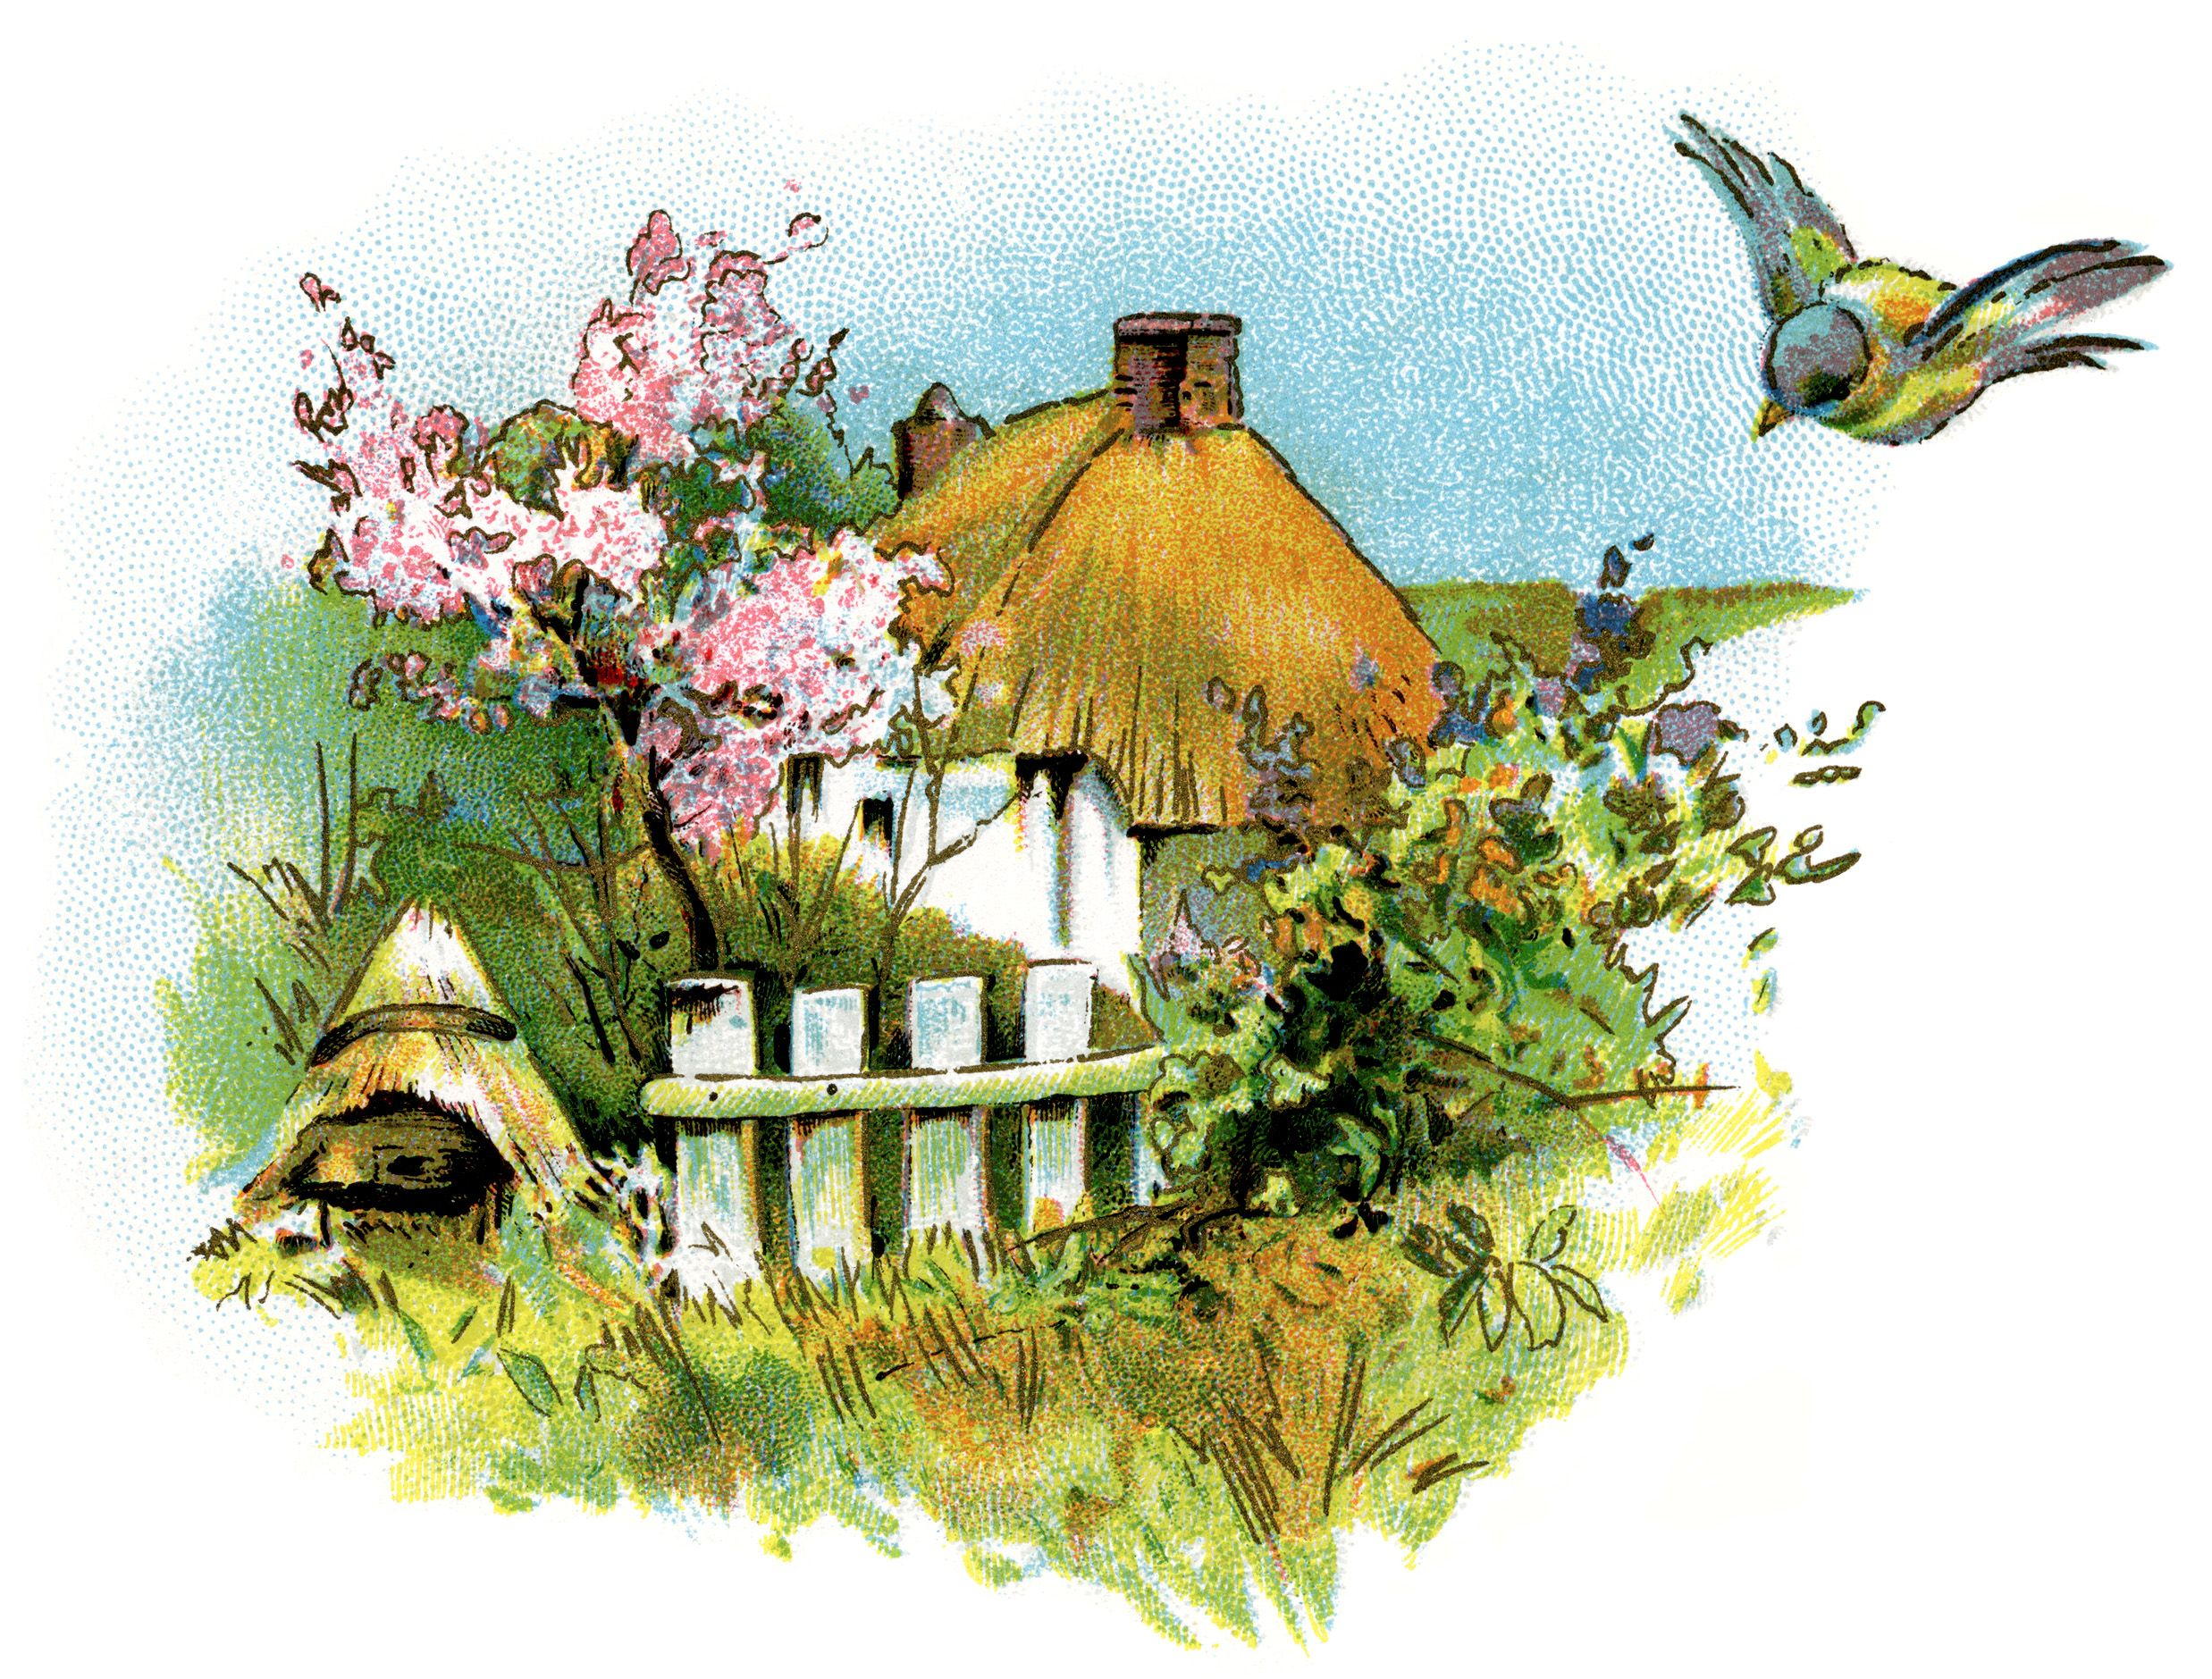 small country cottage clip art, thatched roof cottage illustration.